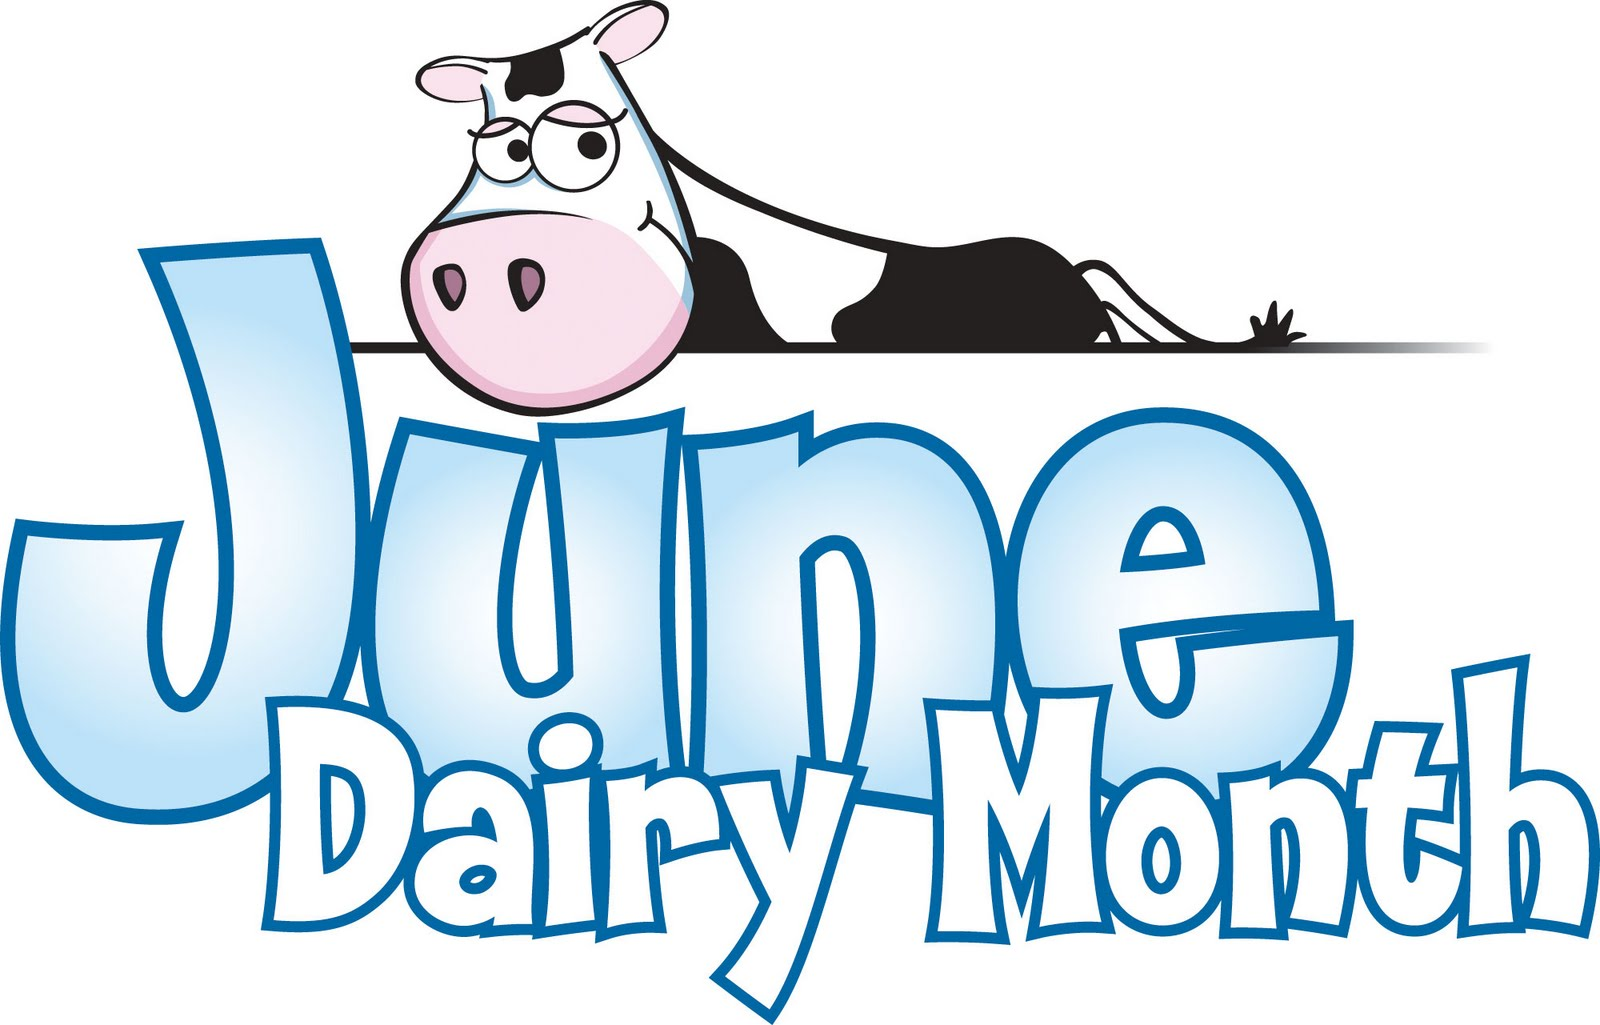 june-dairy-month-bessie2.jpg